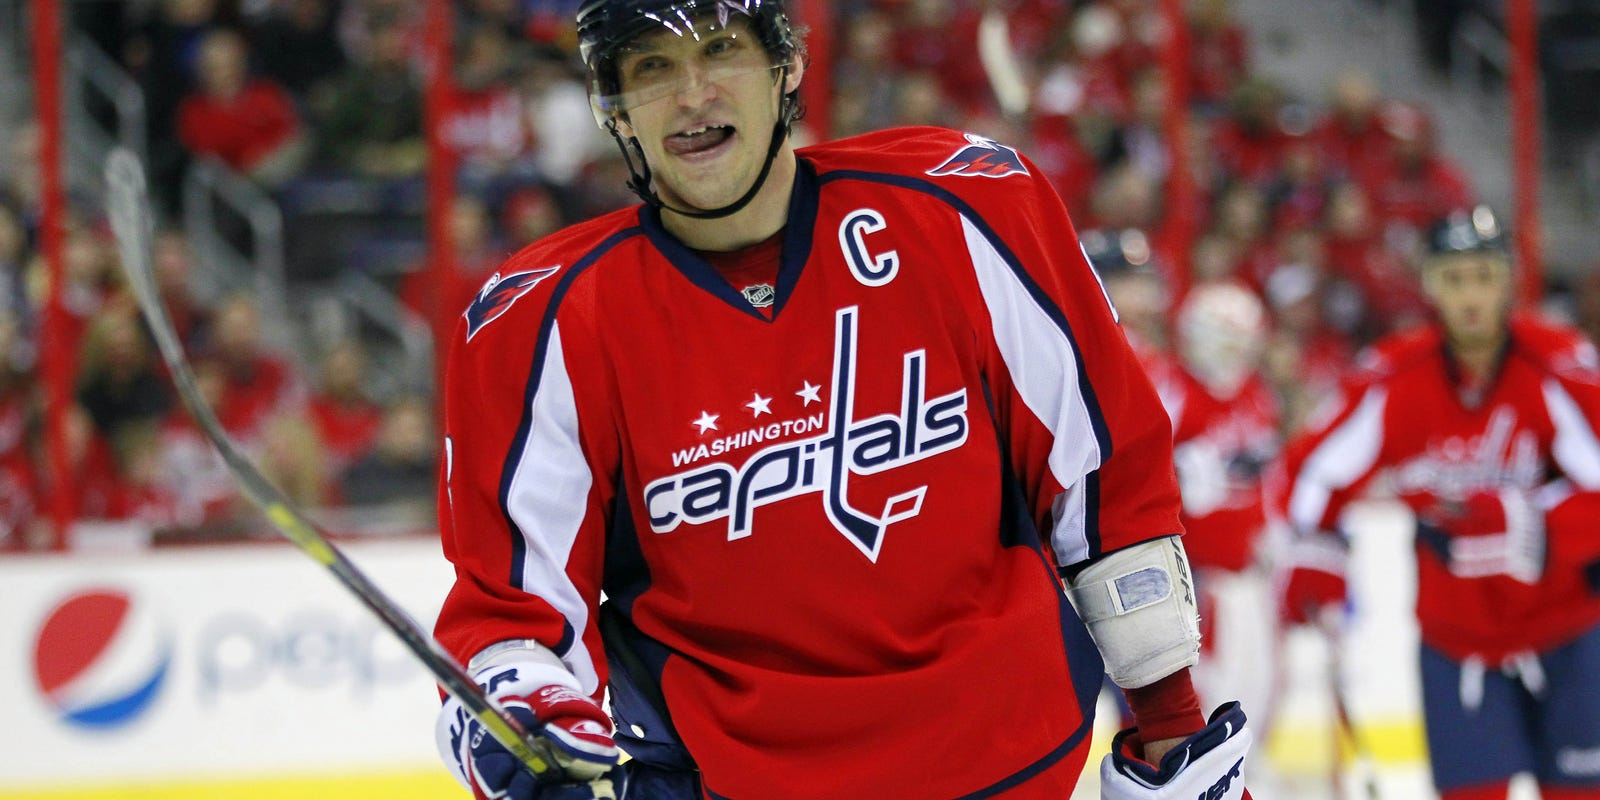 Alex Ovechkin s first goal leads Capitals to first win a269c11697a2